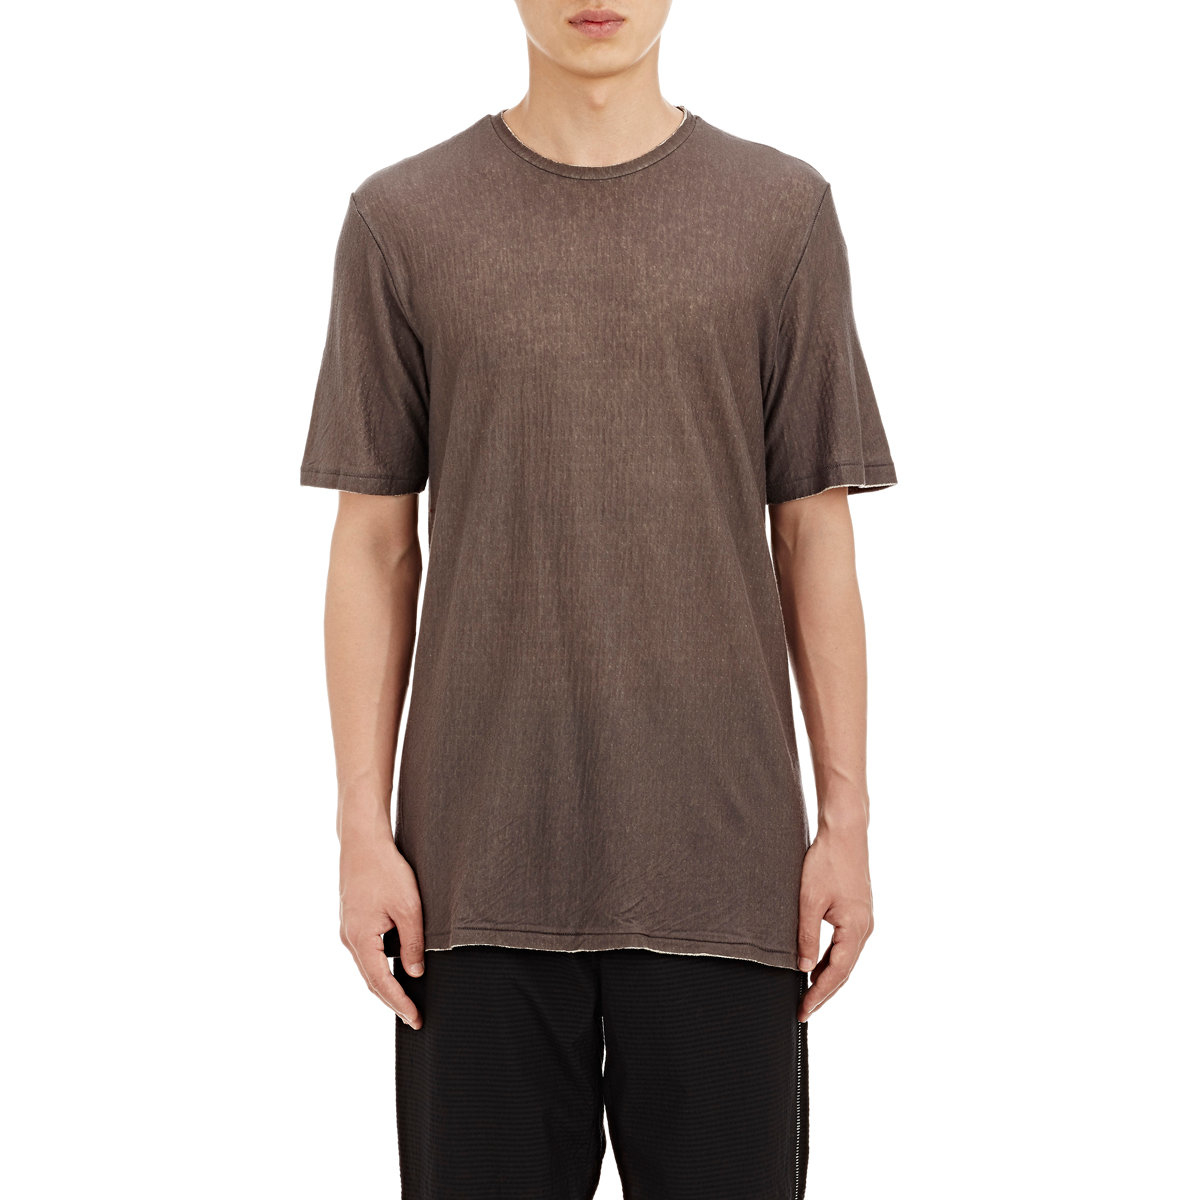 Rag bone rigby t shirt in gray for men lyst for Rag and bone t shirts